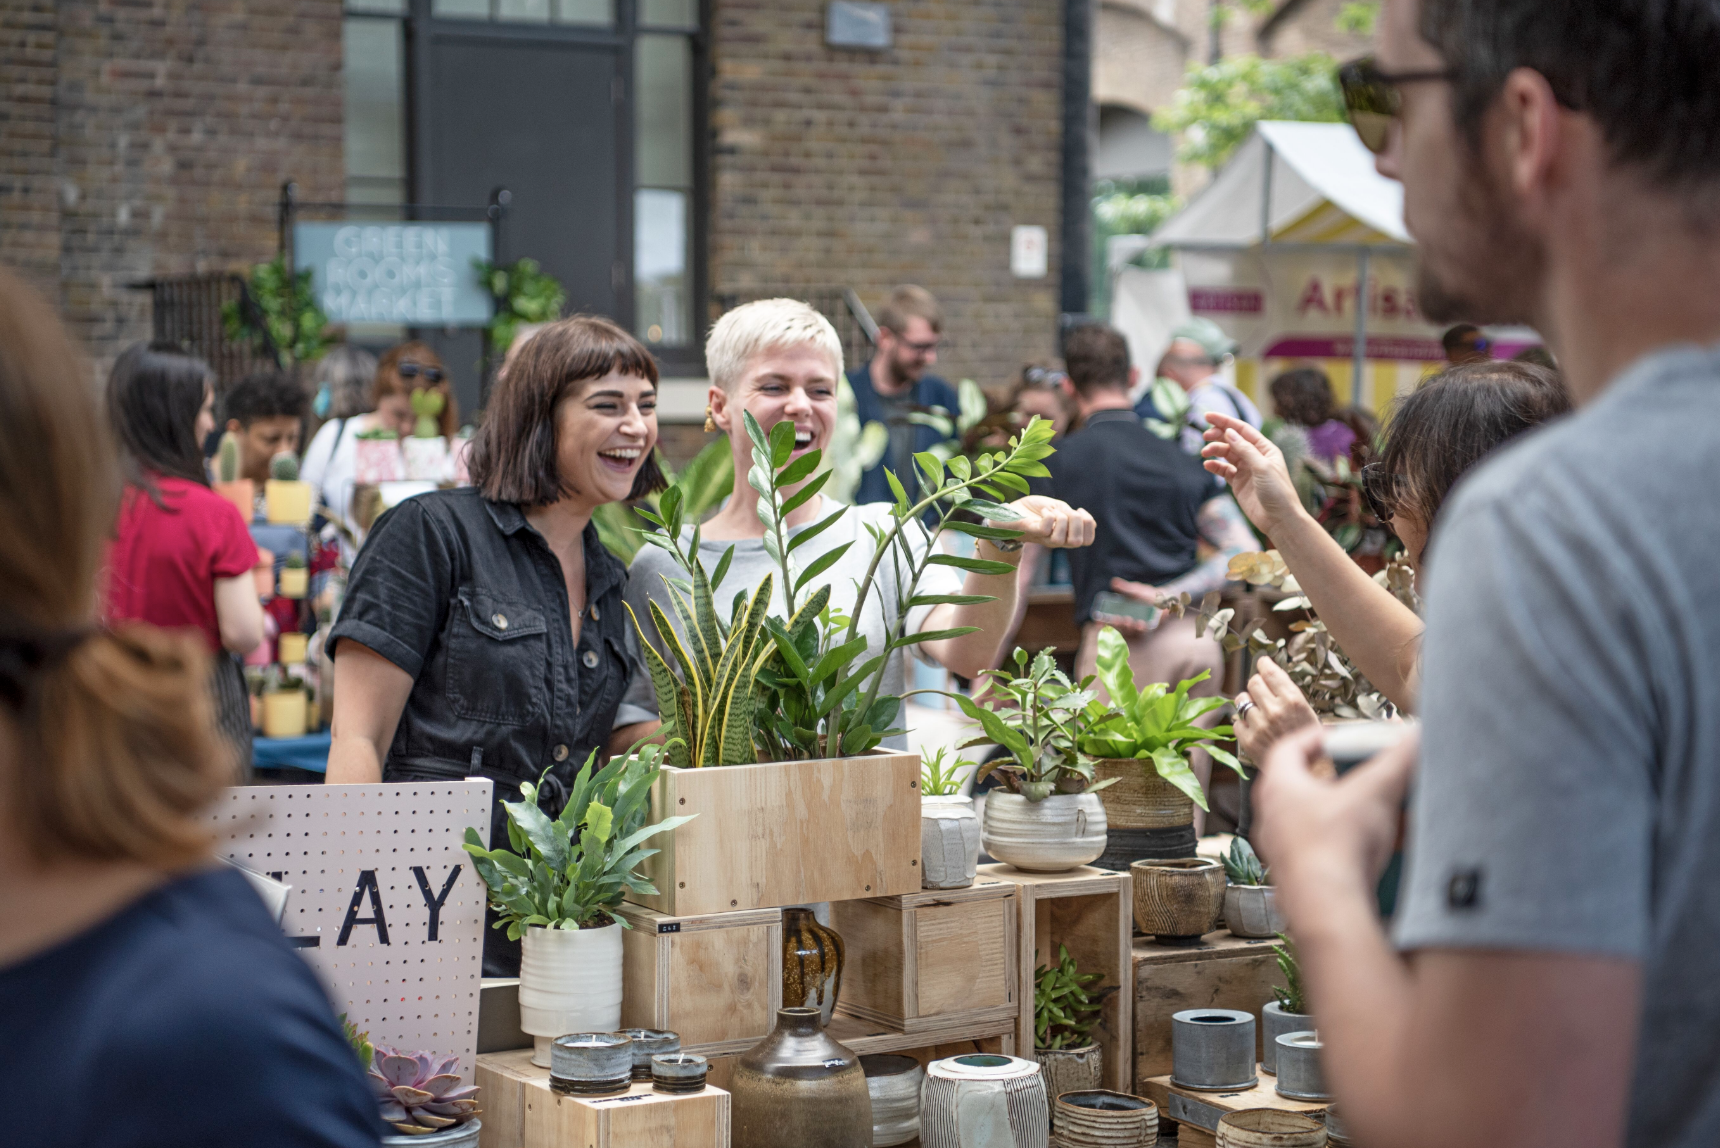 Urban Jungle East at Old Spitalfields Market with Green Rooms Market 1, Pedddle